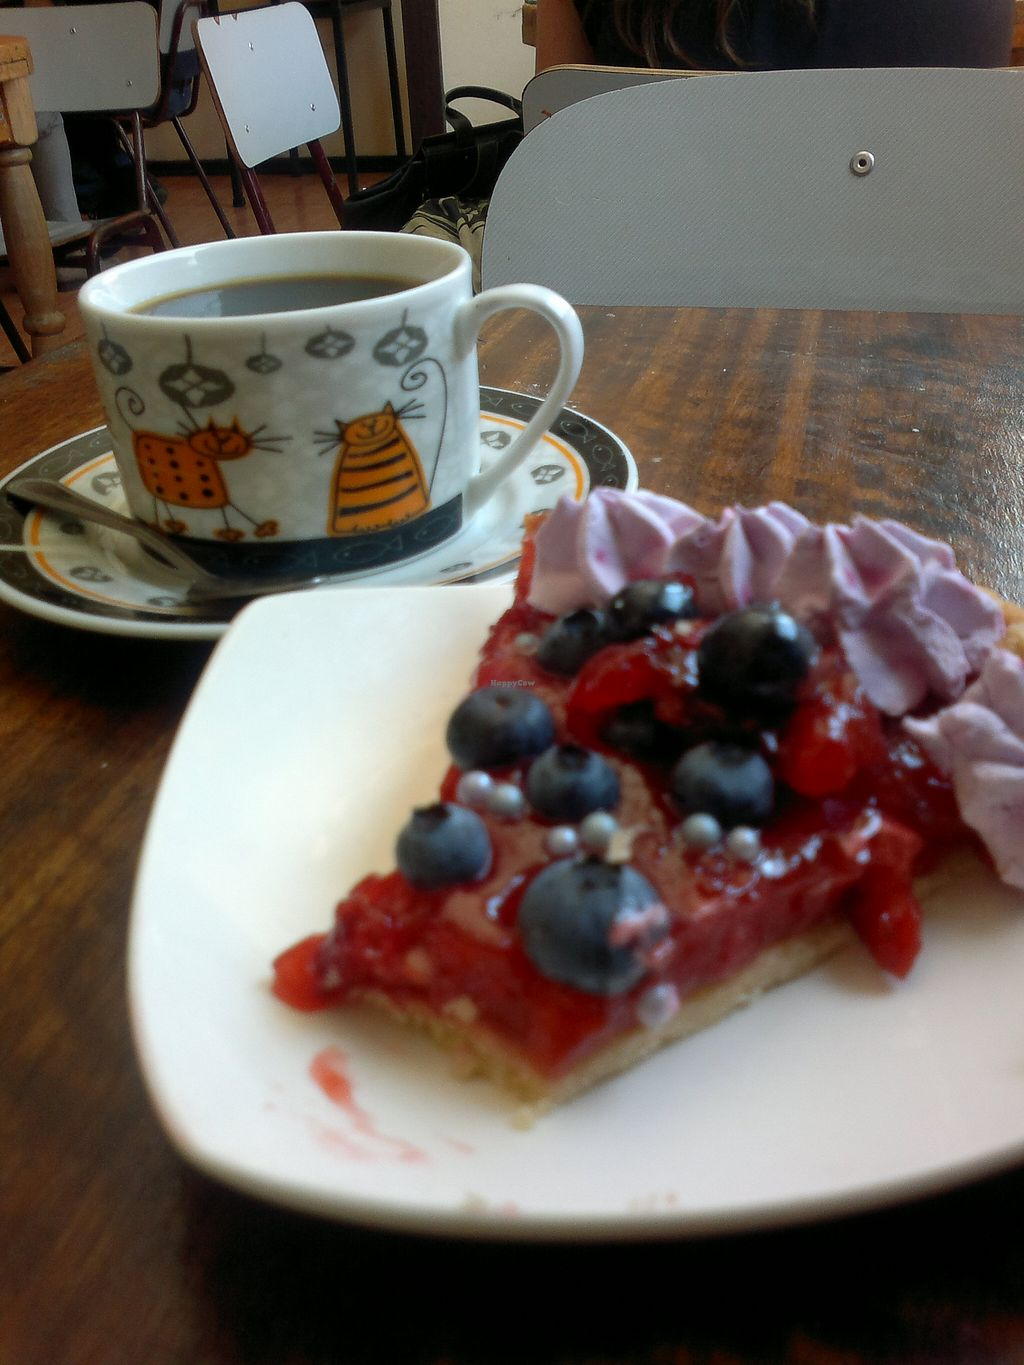 """Photo of Komedor Vegetariano  by <a href=""""/members/profile/Patapompon"""">Patapompon</a> <br/>Vegan 'berries tart' and 'figs coffee' in the Komedor Vegetariano (November 2015) <br/> November 27, 2015  - <a href='/contact/abuse/image/65765/126315'>Report</a>"""